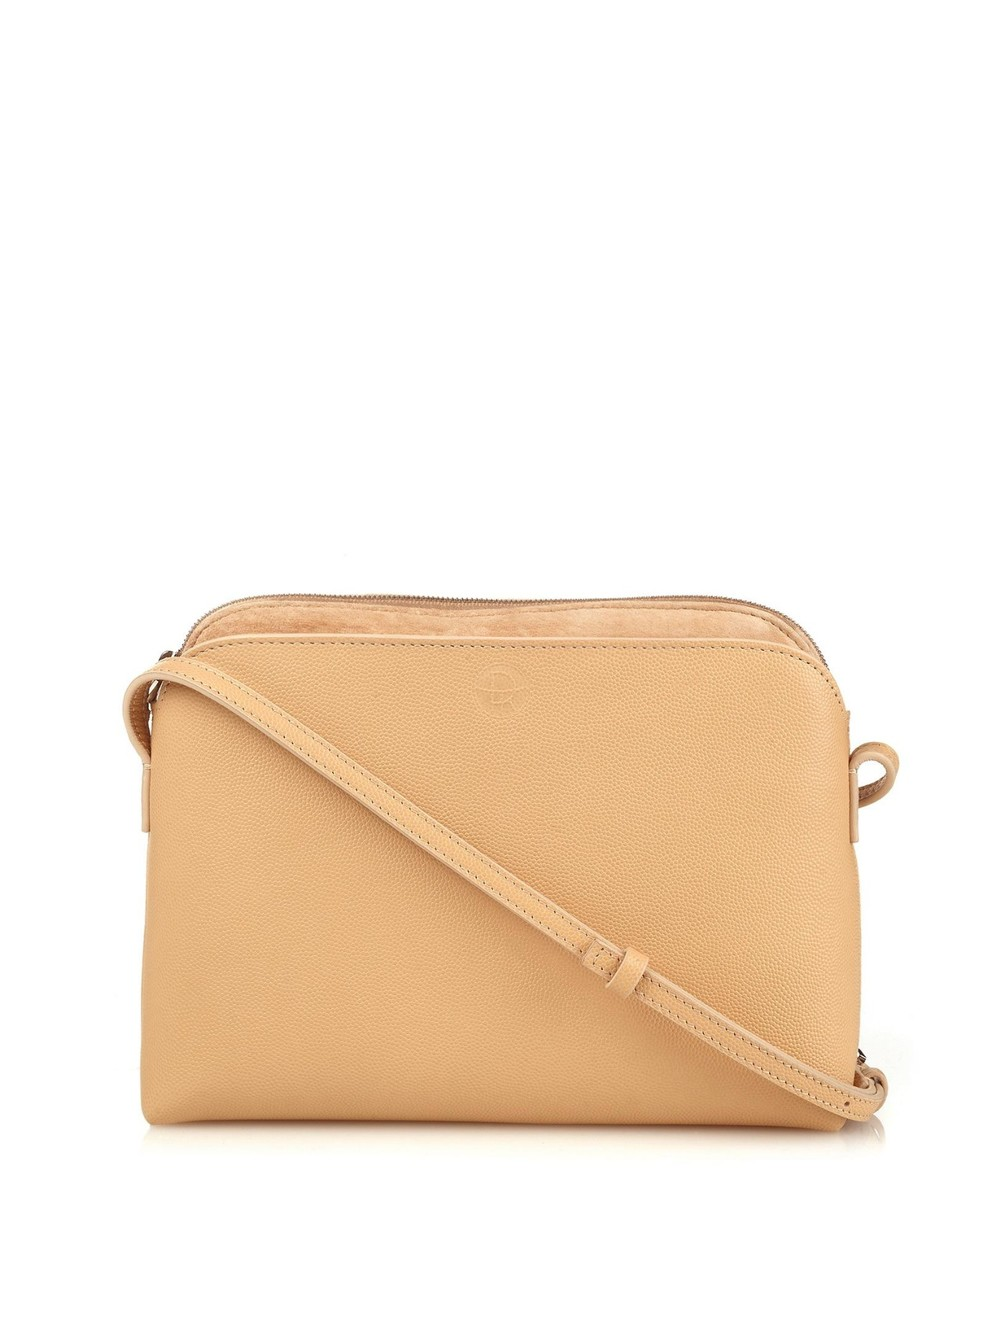 Multi Pouch Cross Body Bag   Beige grained leather and suede inner pocket with slim adjustable strap.  THE ROW $1150